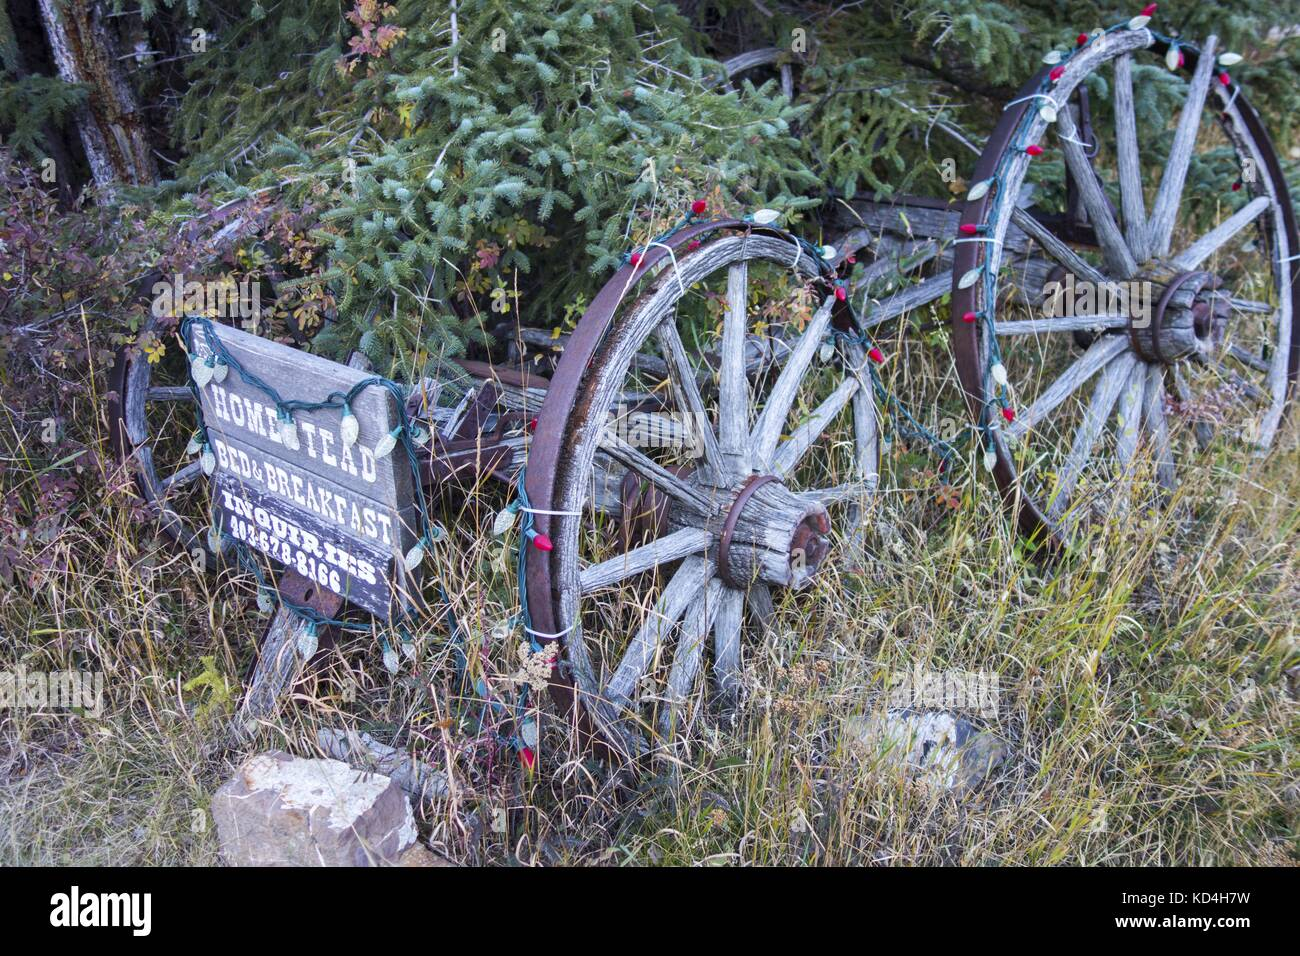 Bed and Breakfast Sign and old Western Wagon Wheel Stage Coach in Backyard of Homestead Land Holding in Town of - Stock Image